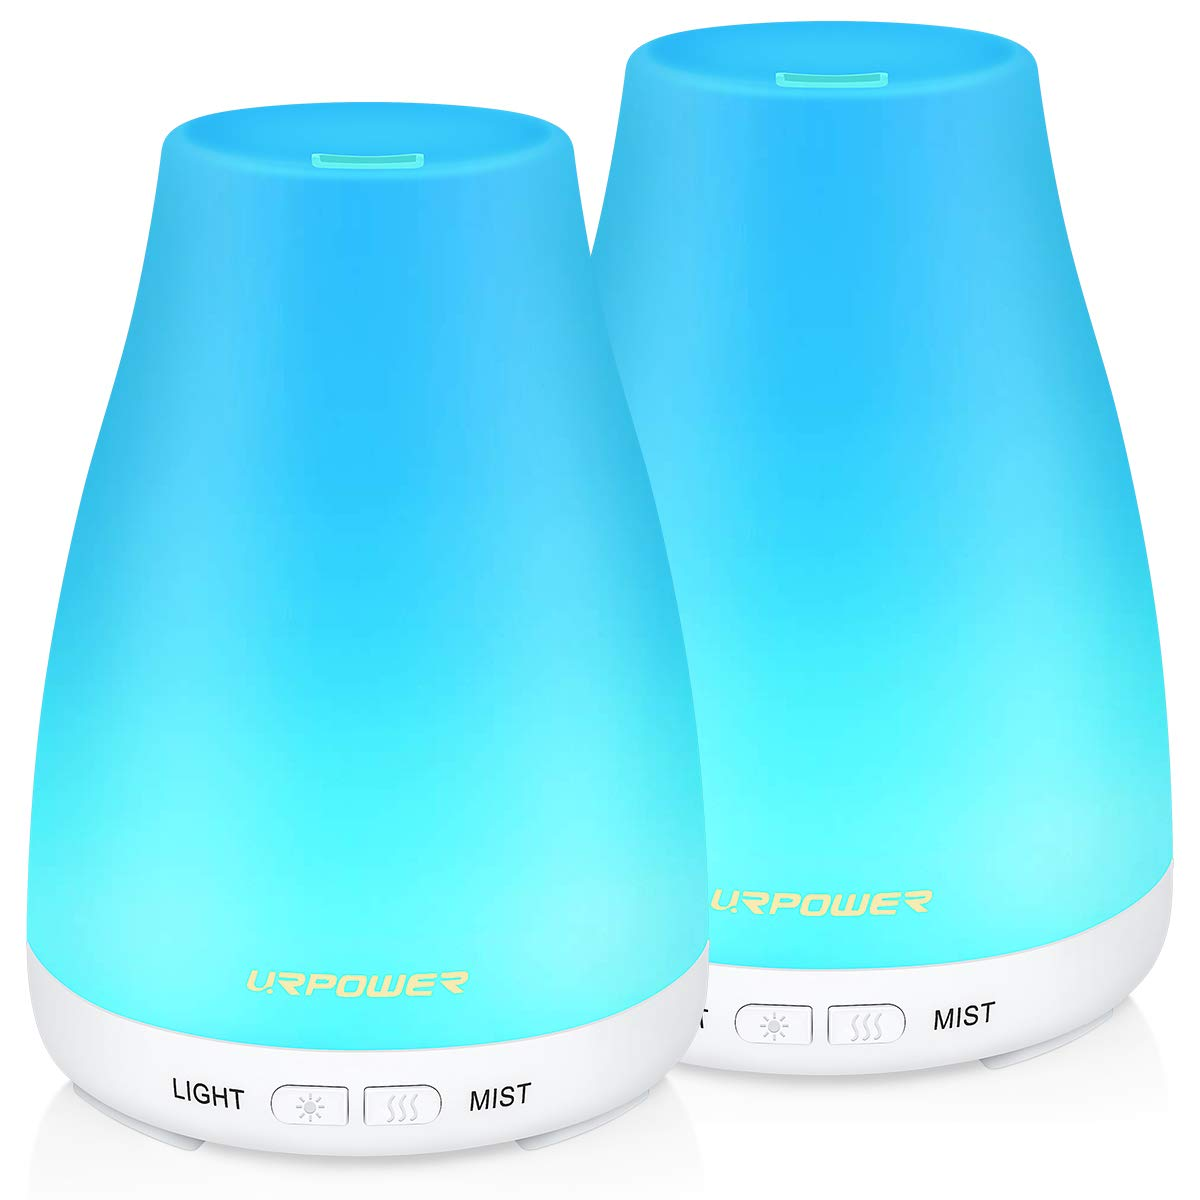 URPOWER Essential Oil Diffuser, 2 Pack Aromatherapy Diffuser for Essential Oils Portable Cool Mist Humidifier with Adjustable Mist Mode 7 Colors LED Lights and Waterless Auto Shut-Off for Home Office by URPOWER